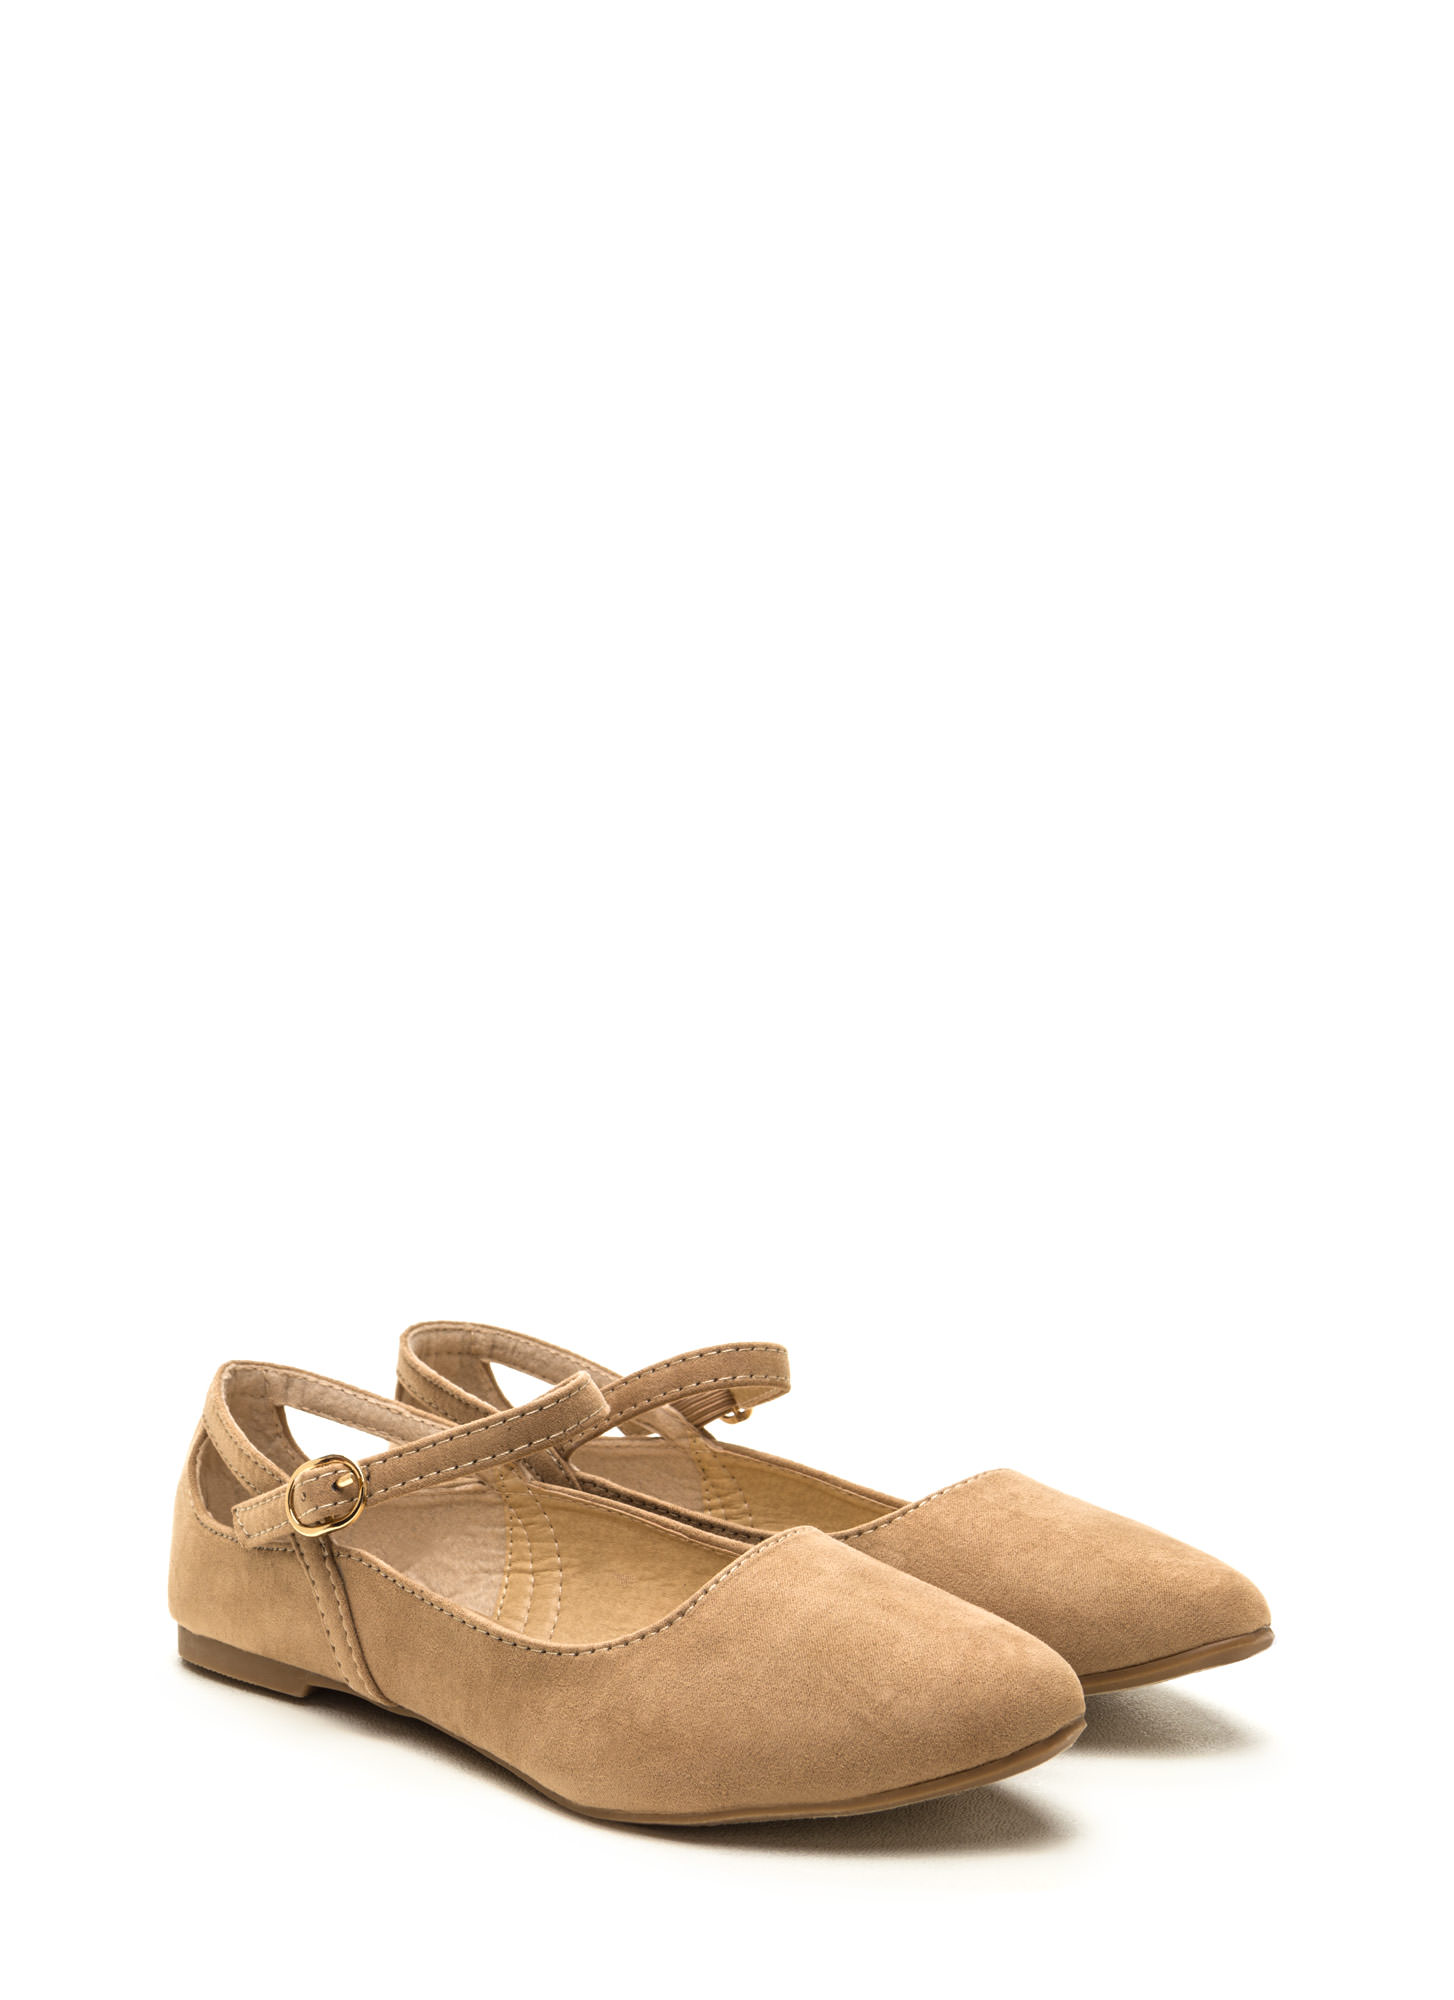 Chic Footnote Pointy Cut-Out Flats BEIGE